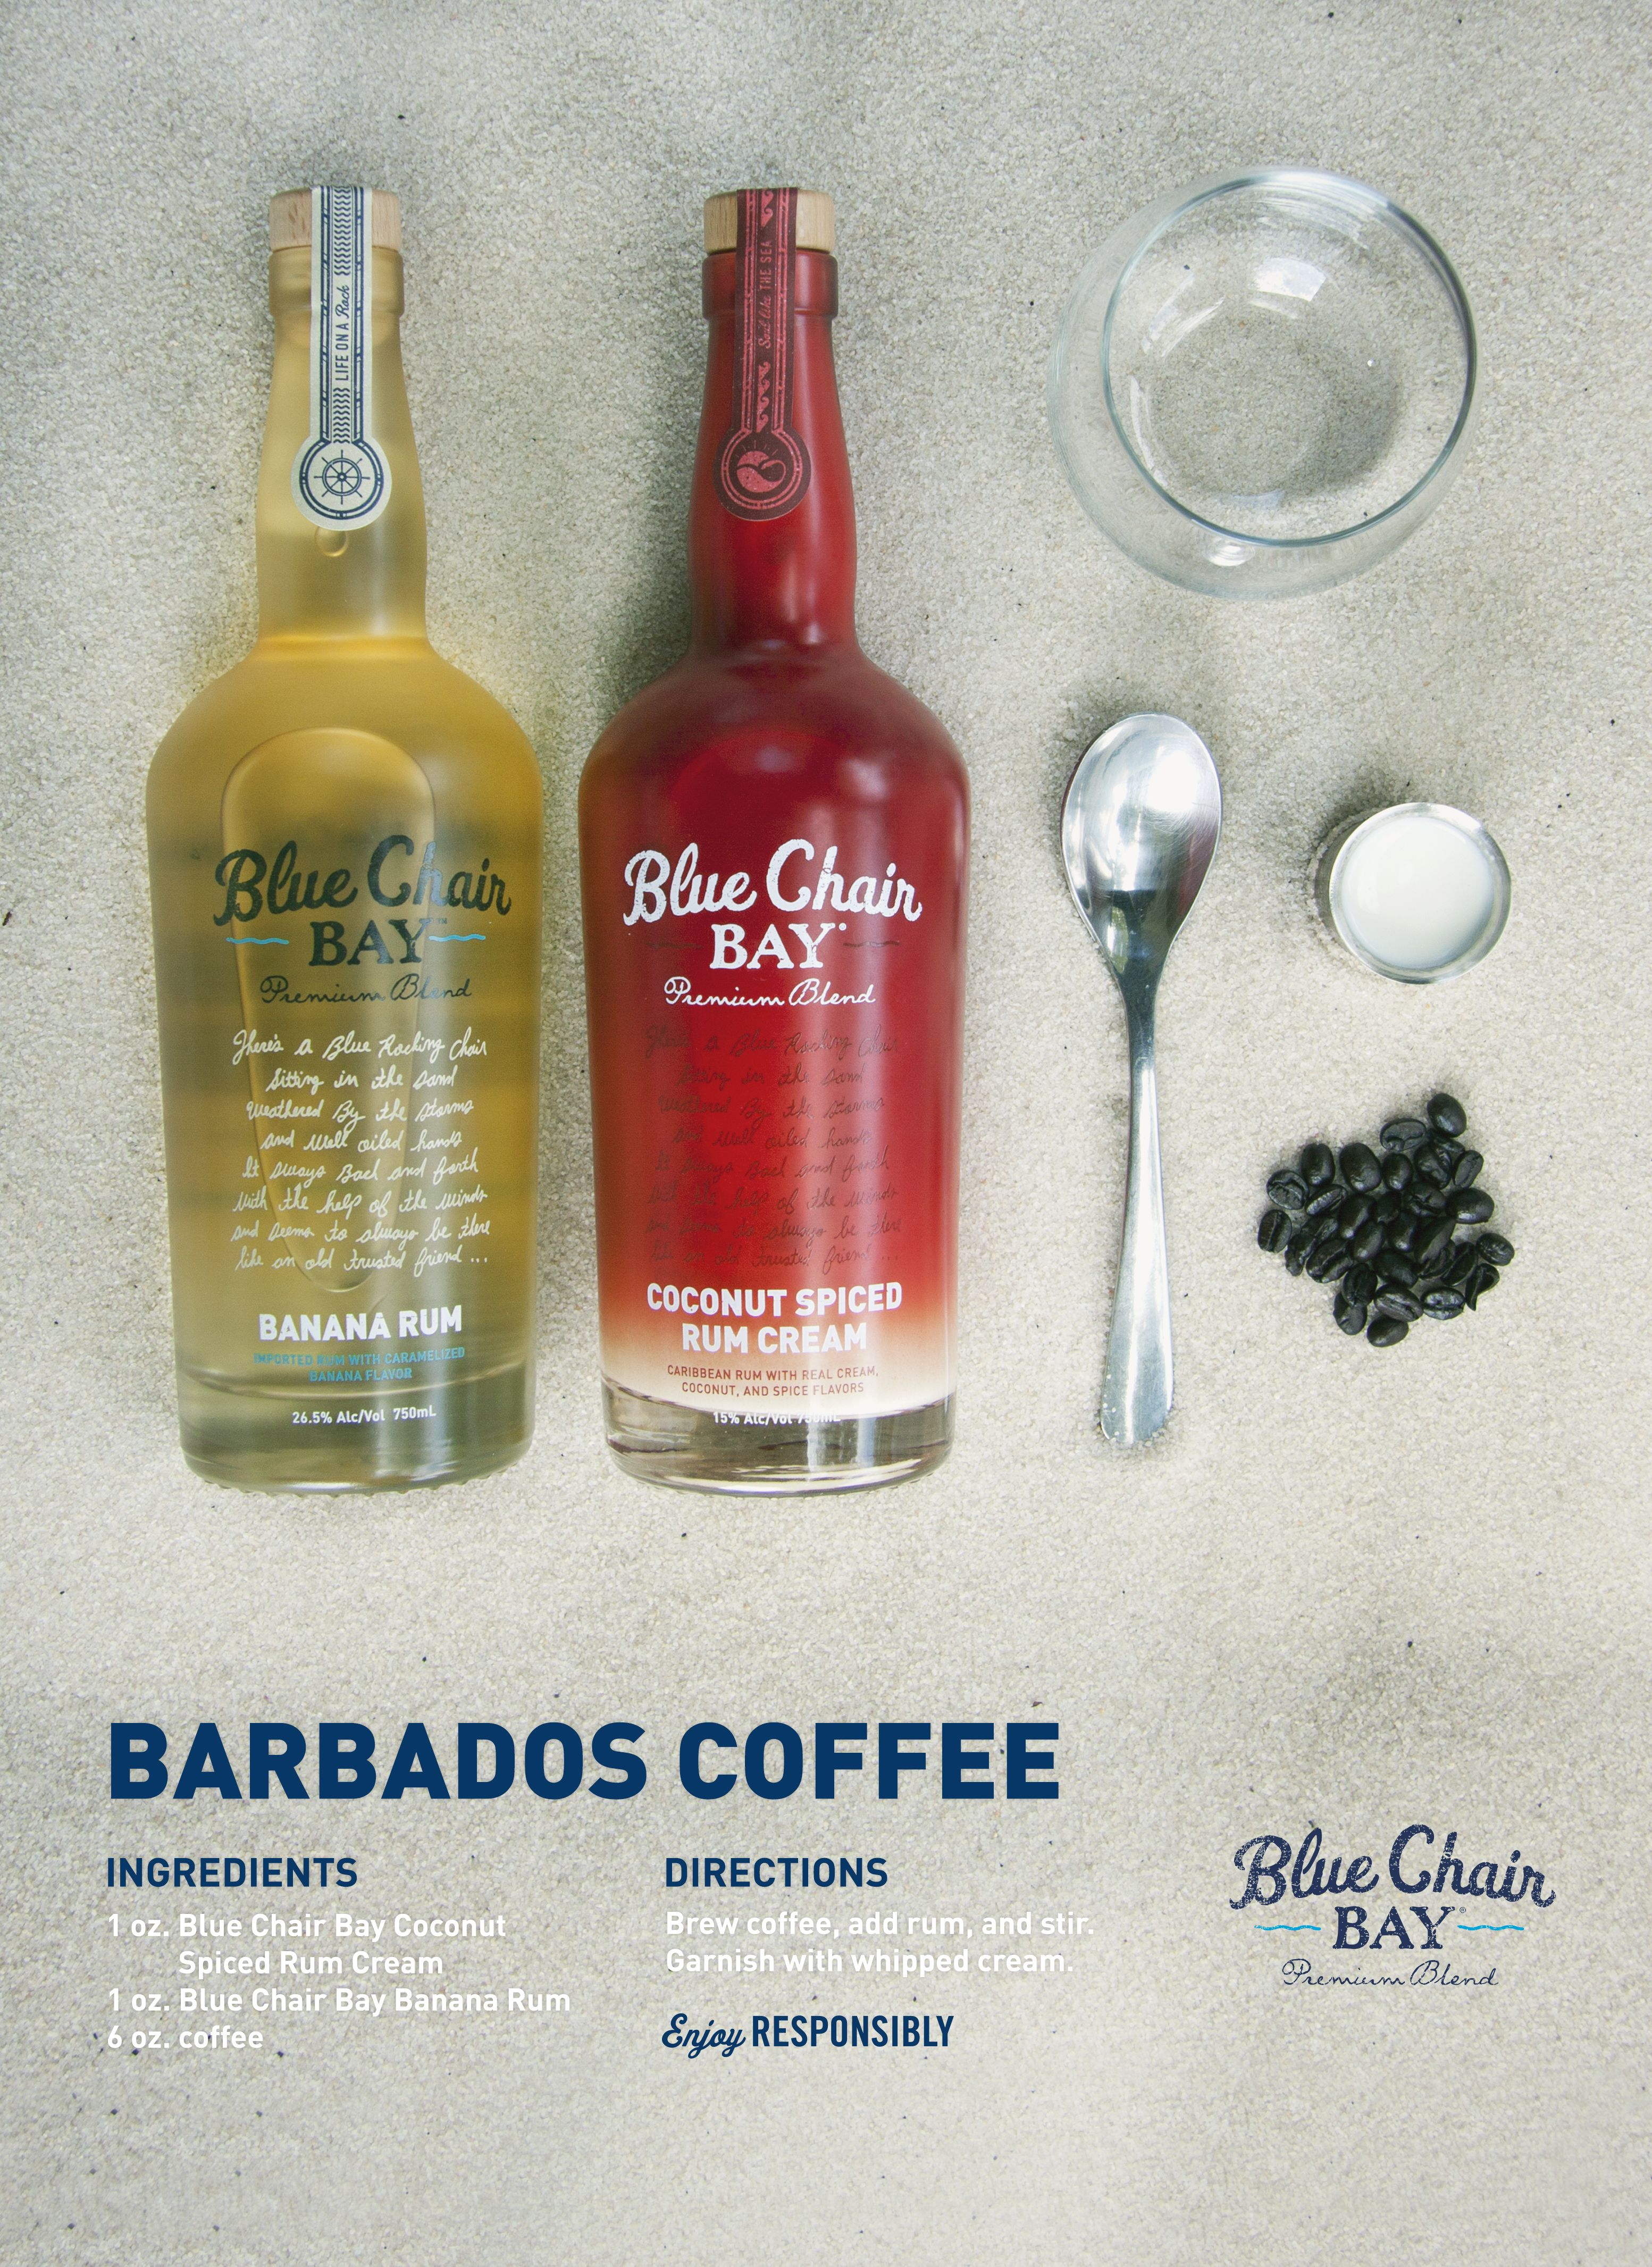 buy blue chair bay rum online upholstered styles names barbados coffee 1 oz coconut spiced